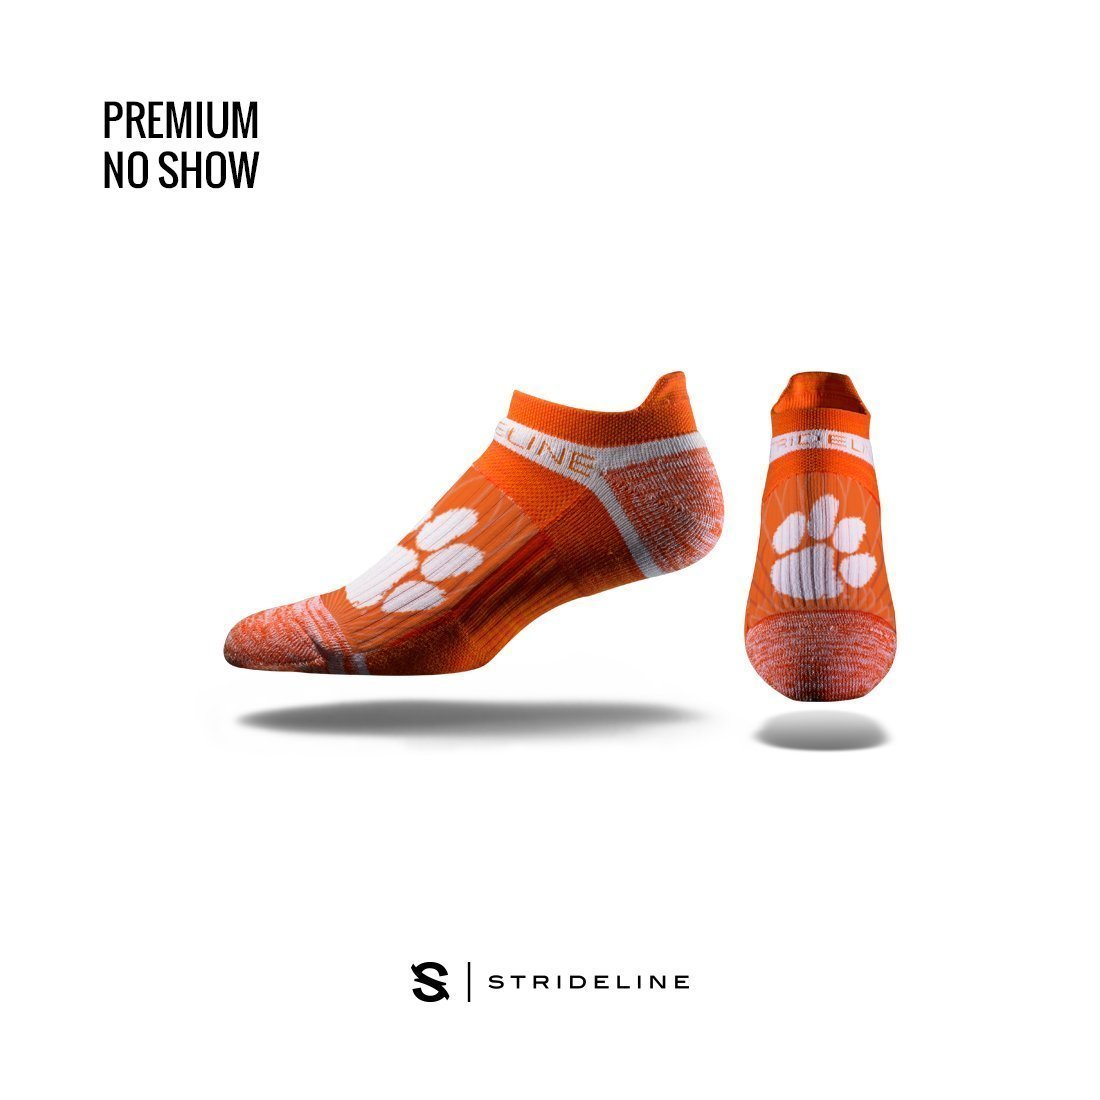 Strideline Clemson Wings Low Cut Socks - Mr. Knickerbocker